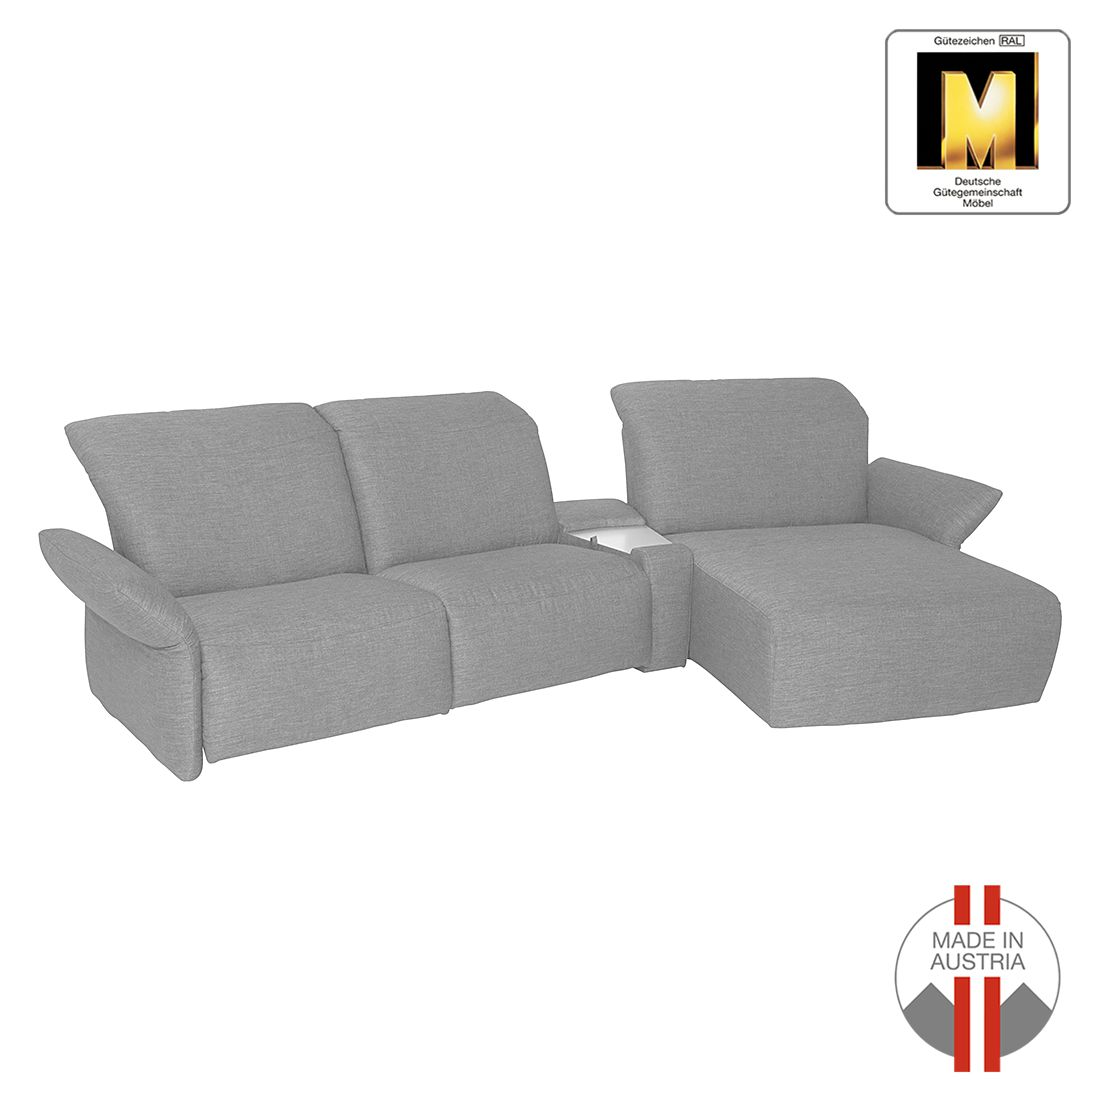 ecksofa bormio webstoff longchair ottomane davorstehend rechts grau ada premium online. Black Bedroom Furniture Sets. Home Design Ideas